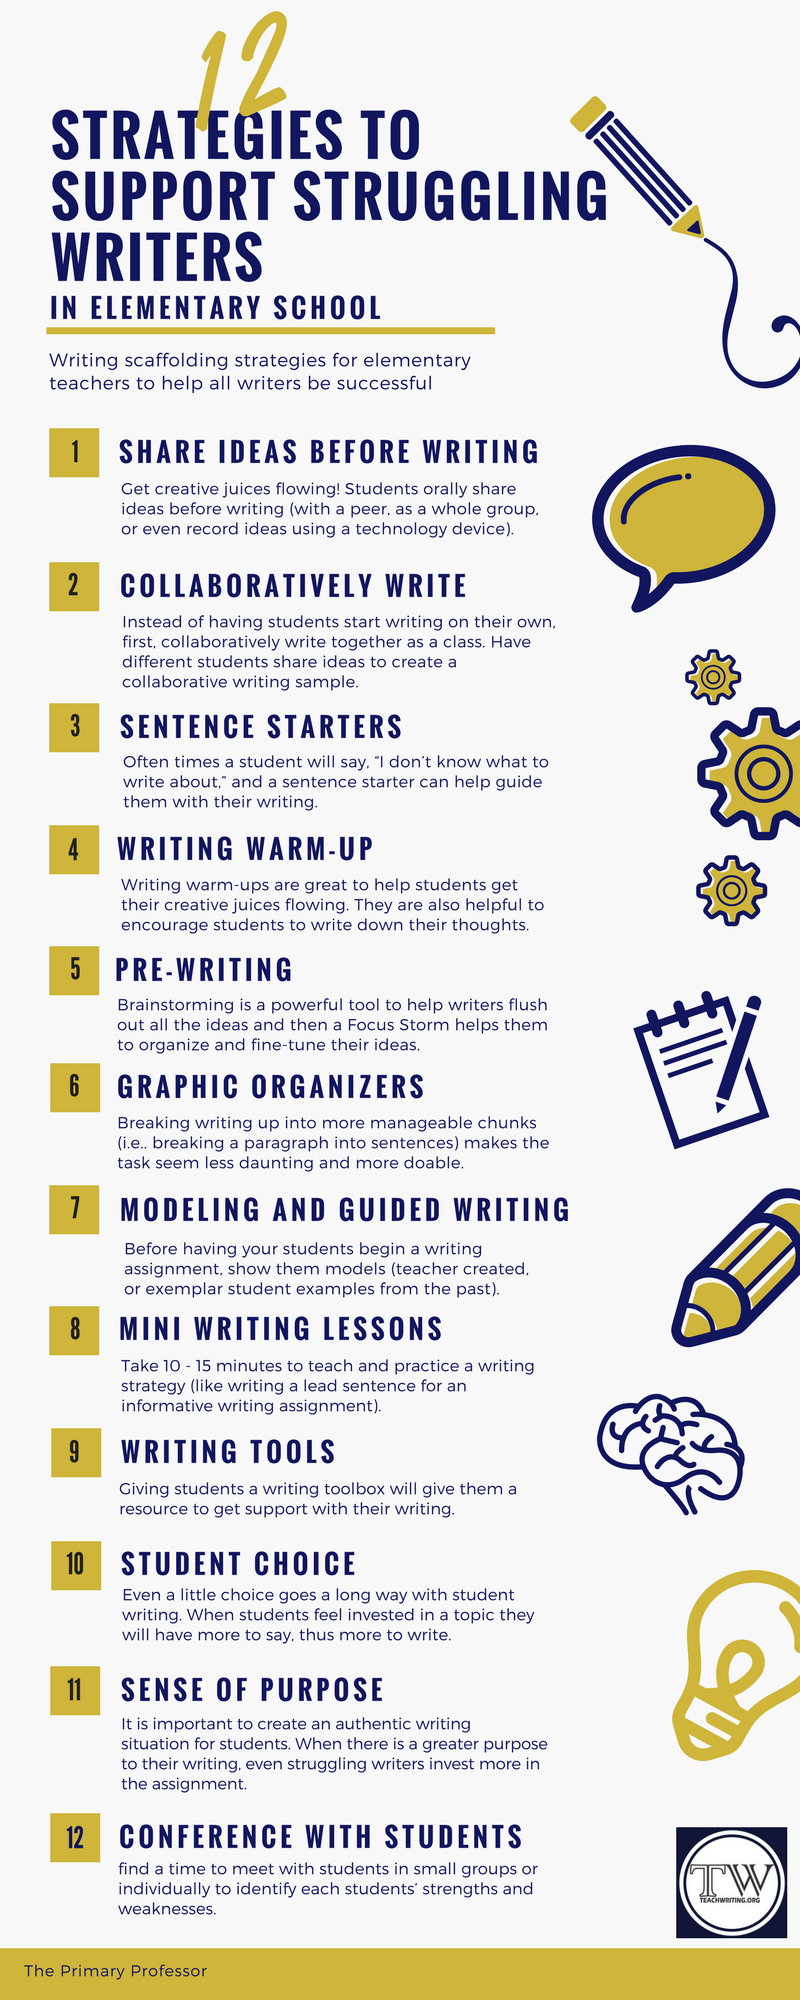 12 Strategies to Support Struggling Writers in Elementary